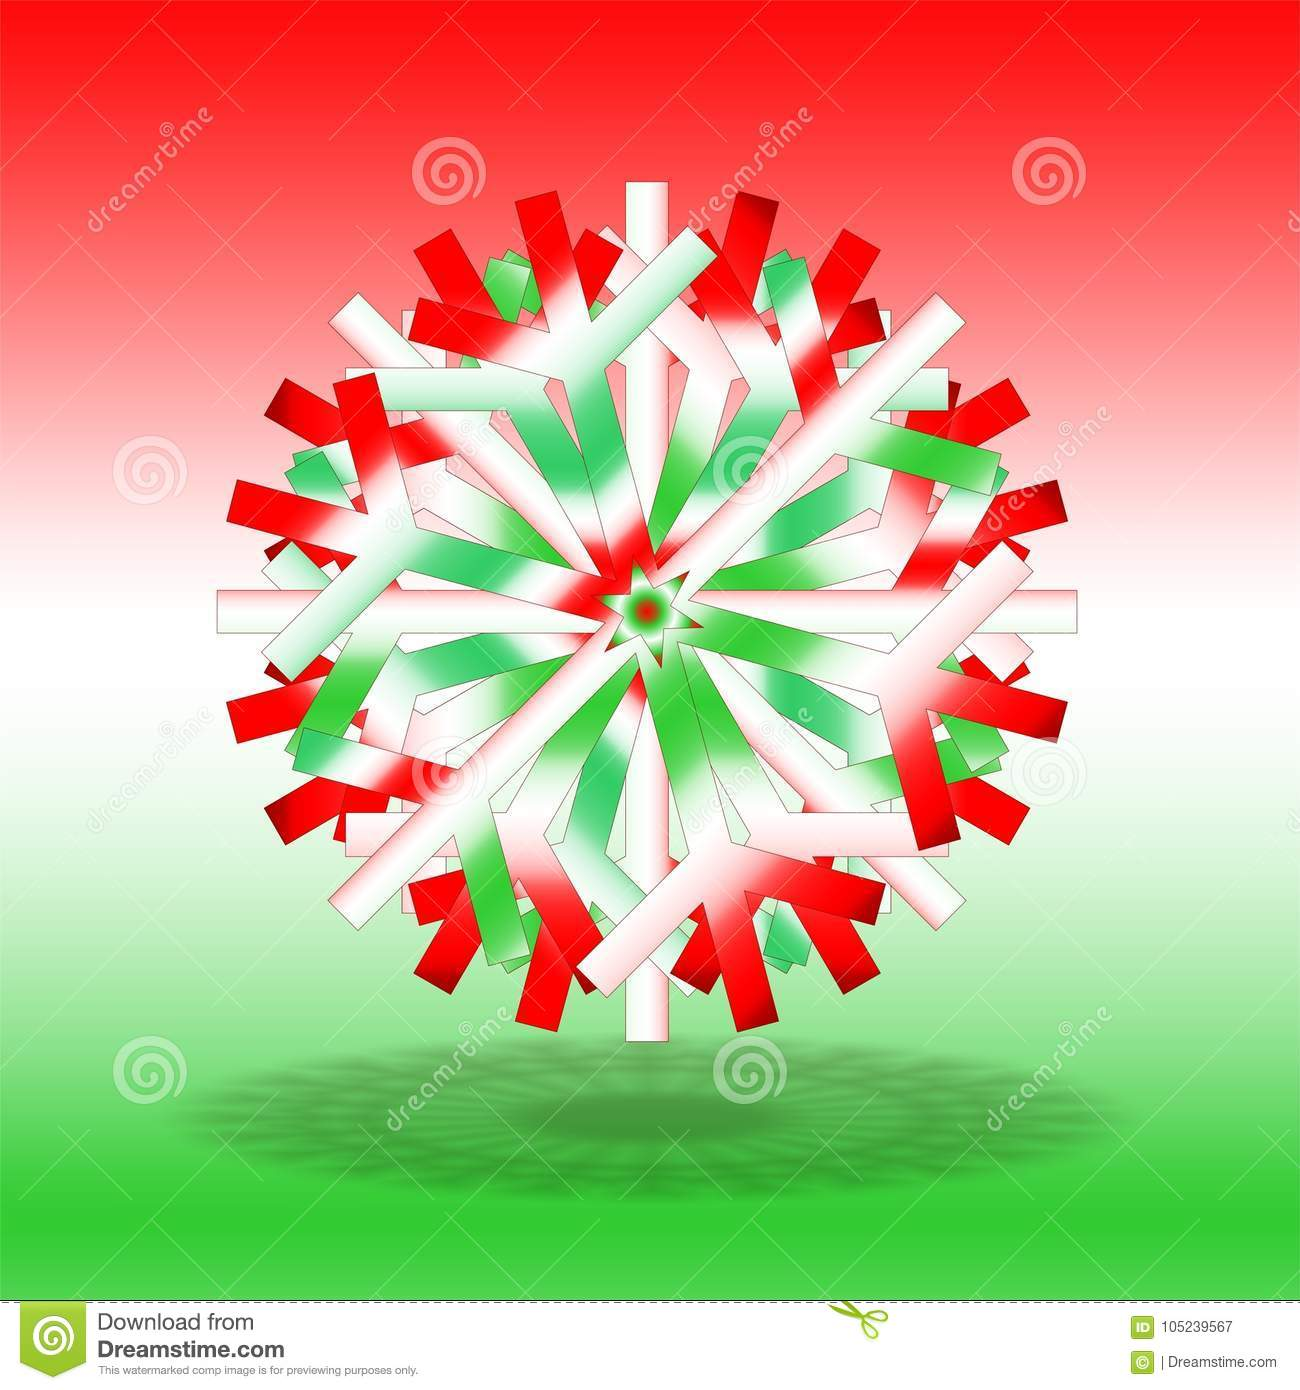 A Single Red White Green Christmas Star With A Shadow On Bottom On